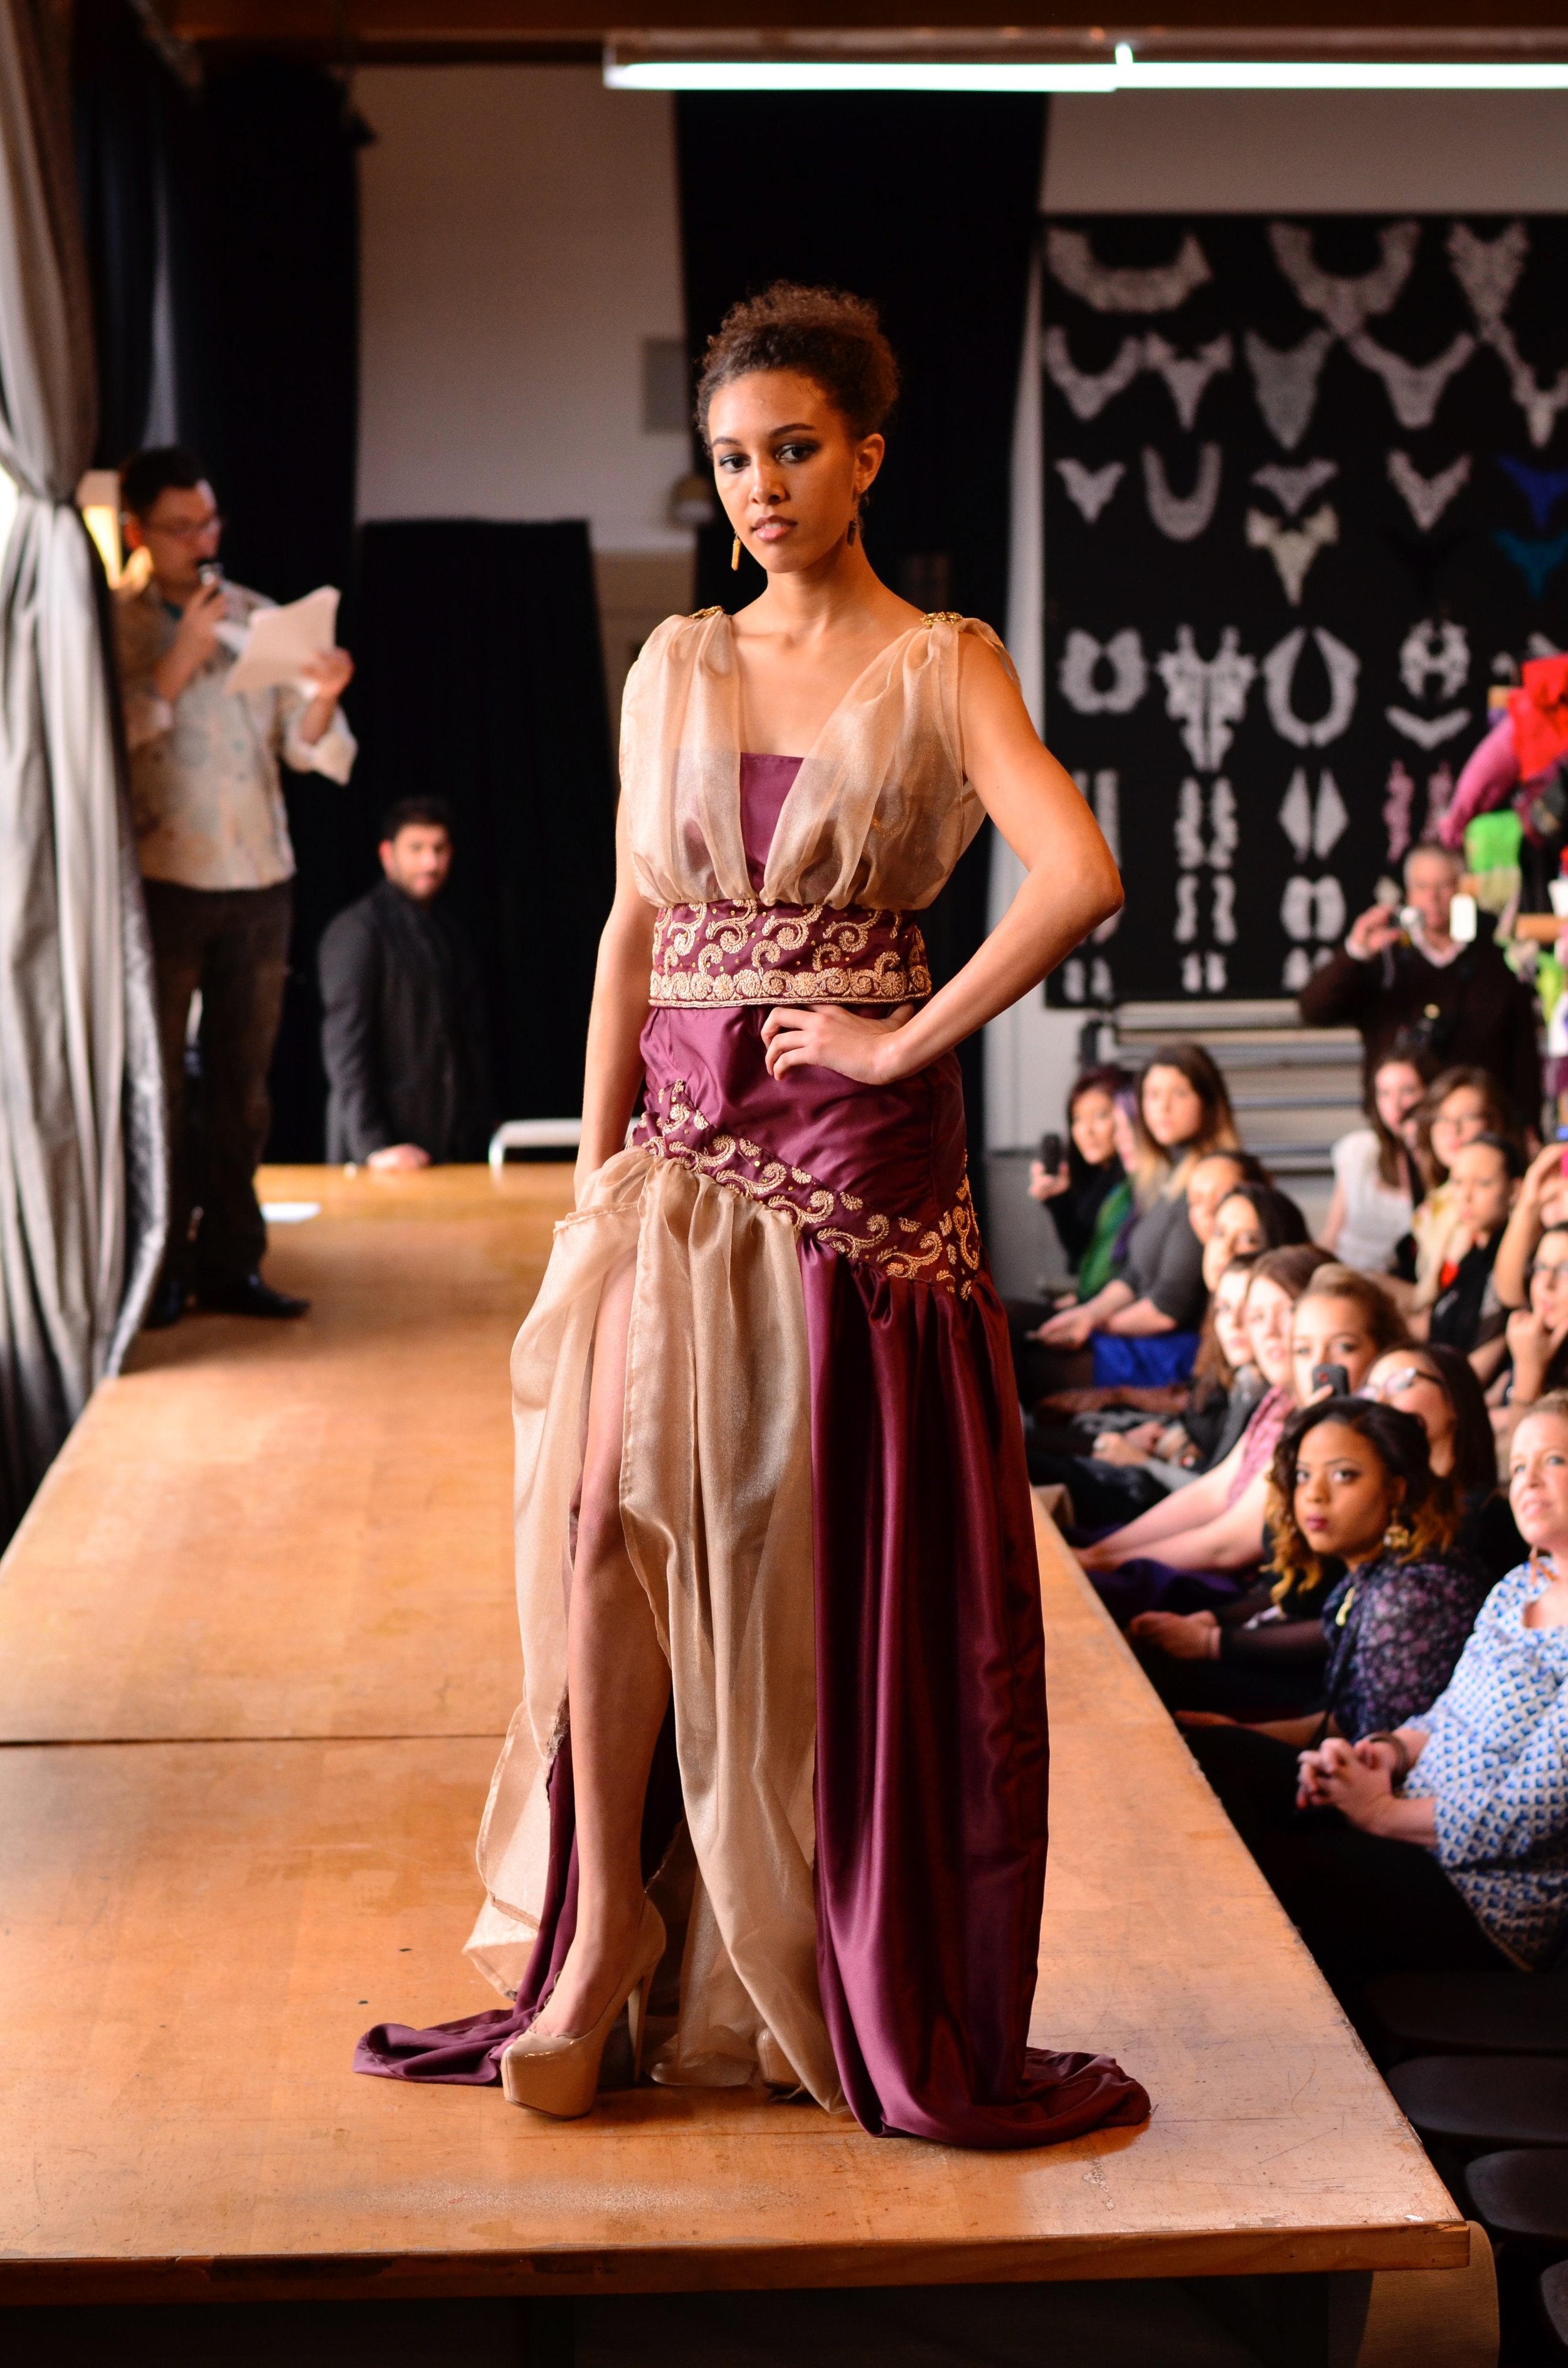 Skirt and matching corset top showcased at design competition